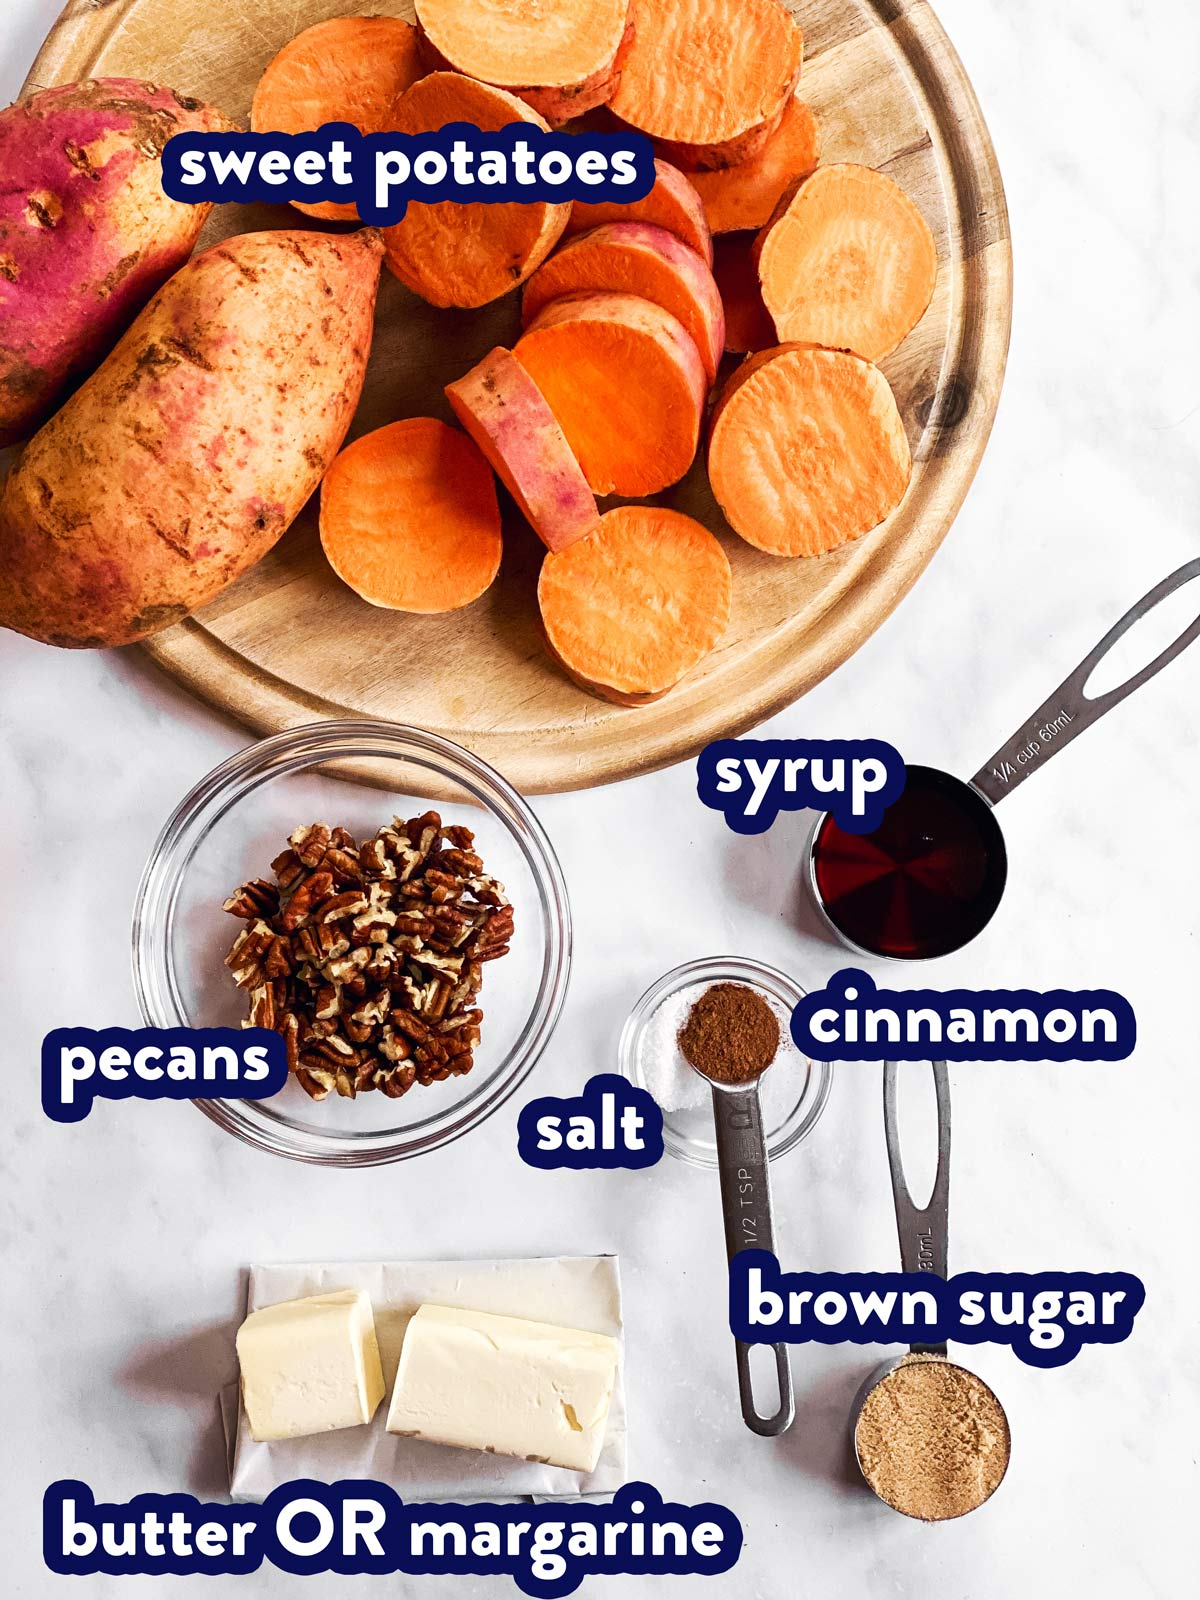 ingredients for baked sweet potato slices with text labels